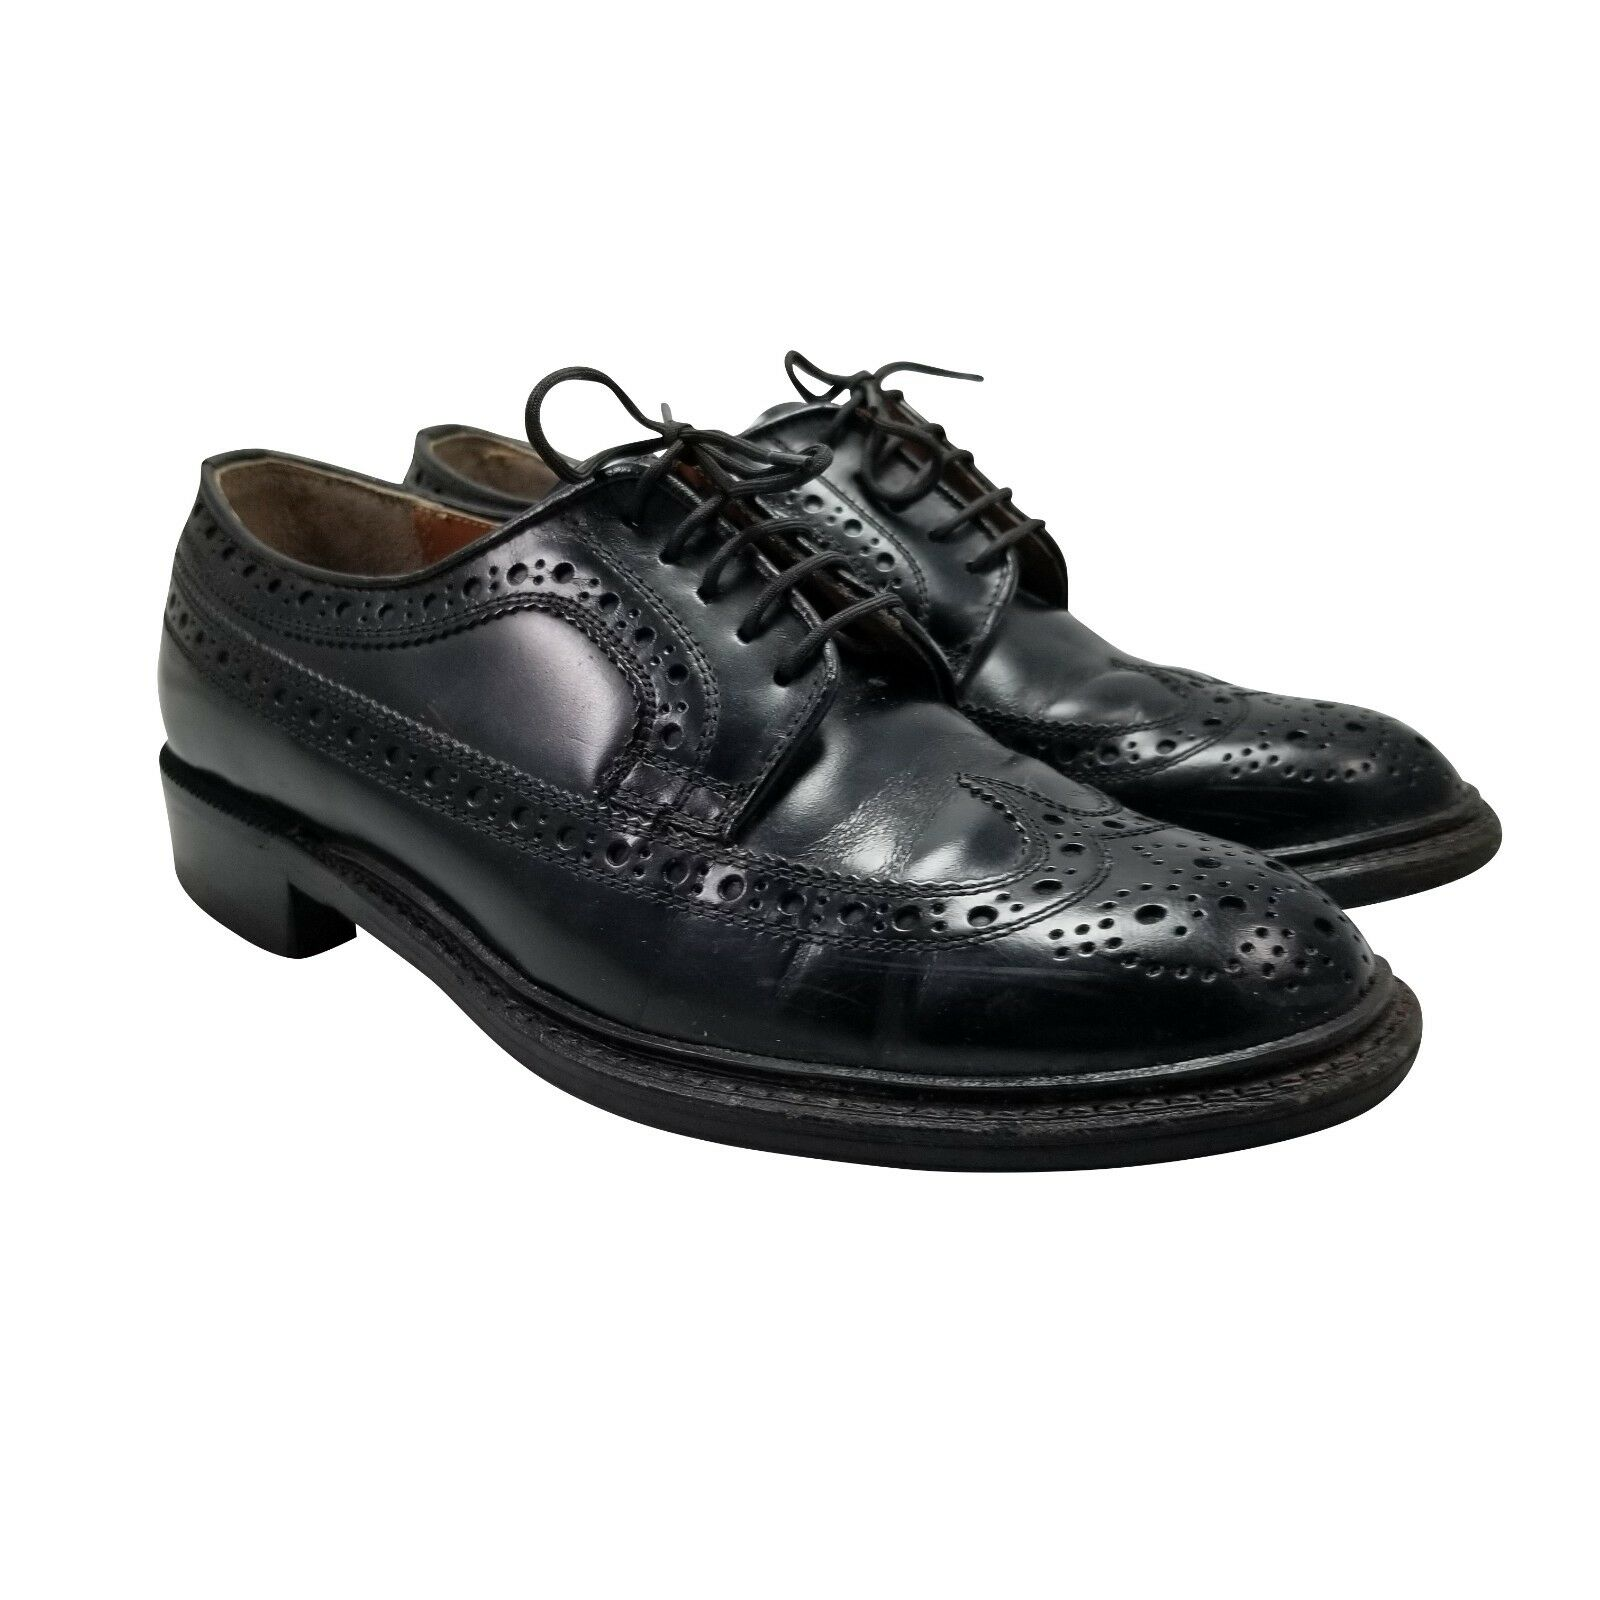 Regal Men's Size 7 Wingtip Brogue Oxford shoes Leather Kumkang Imperial Grade